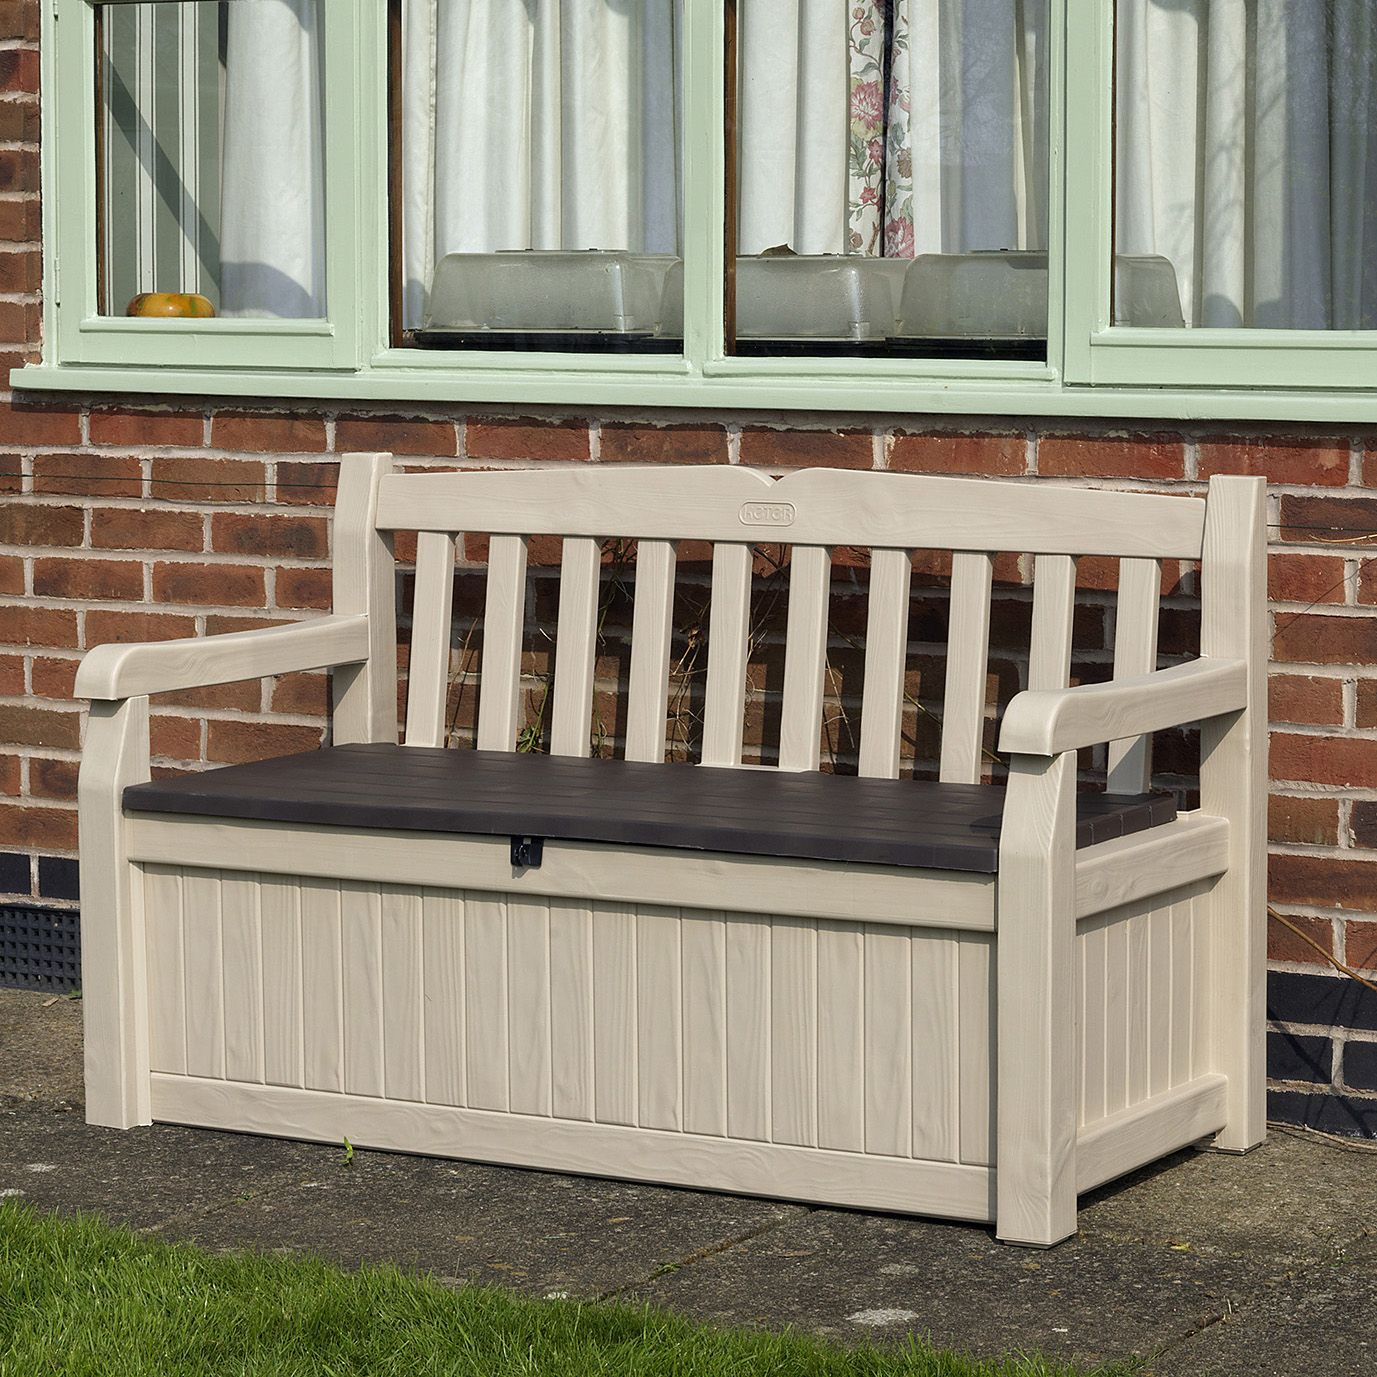 garden low beer furniture british for cost pubs bench